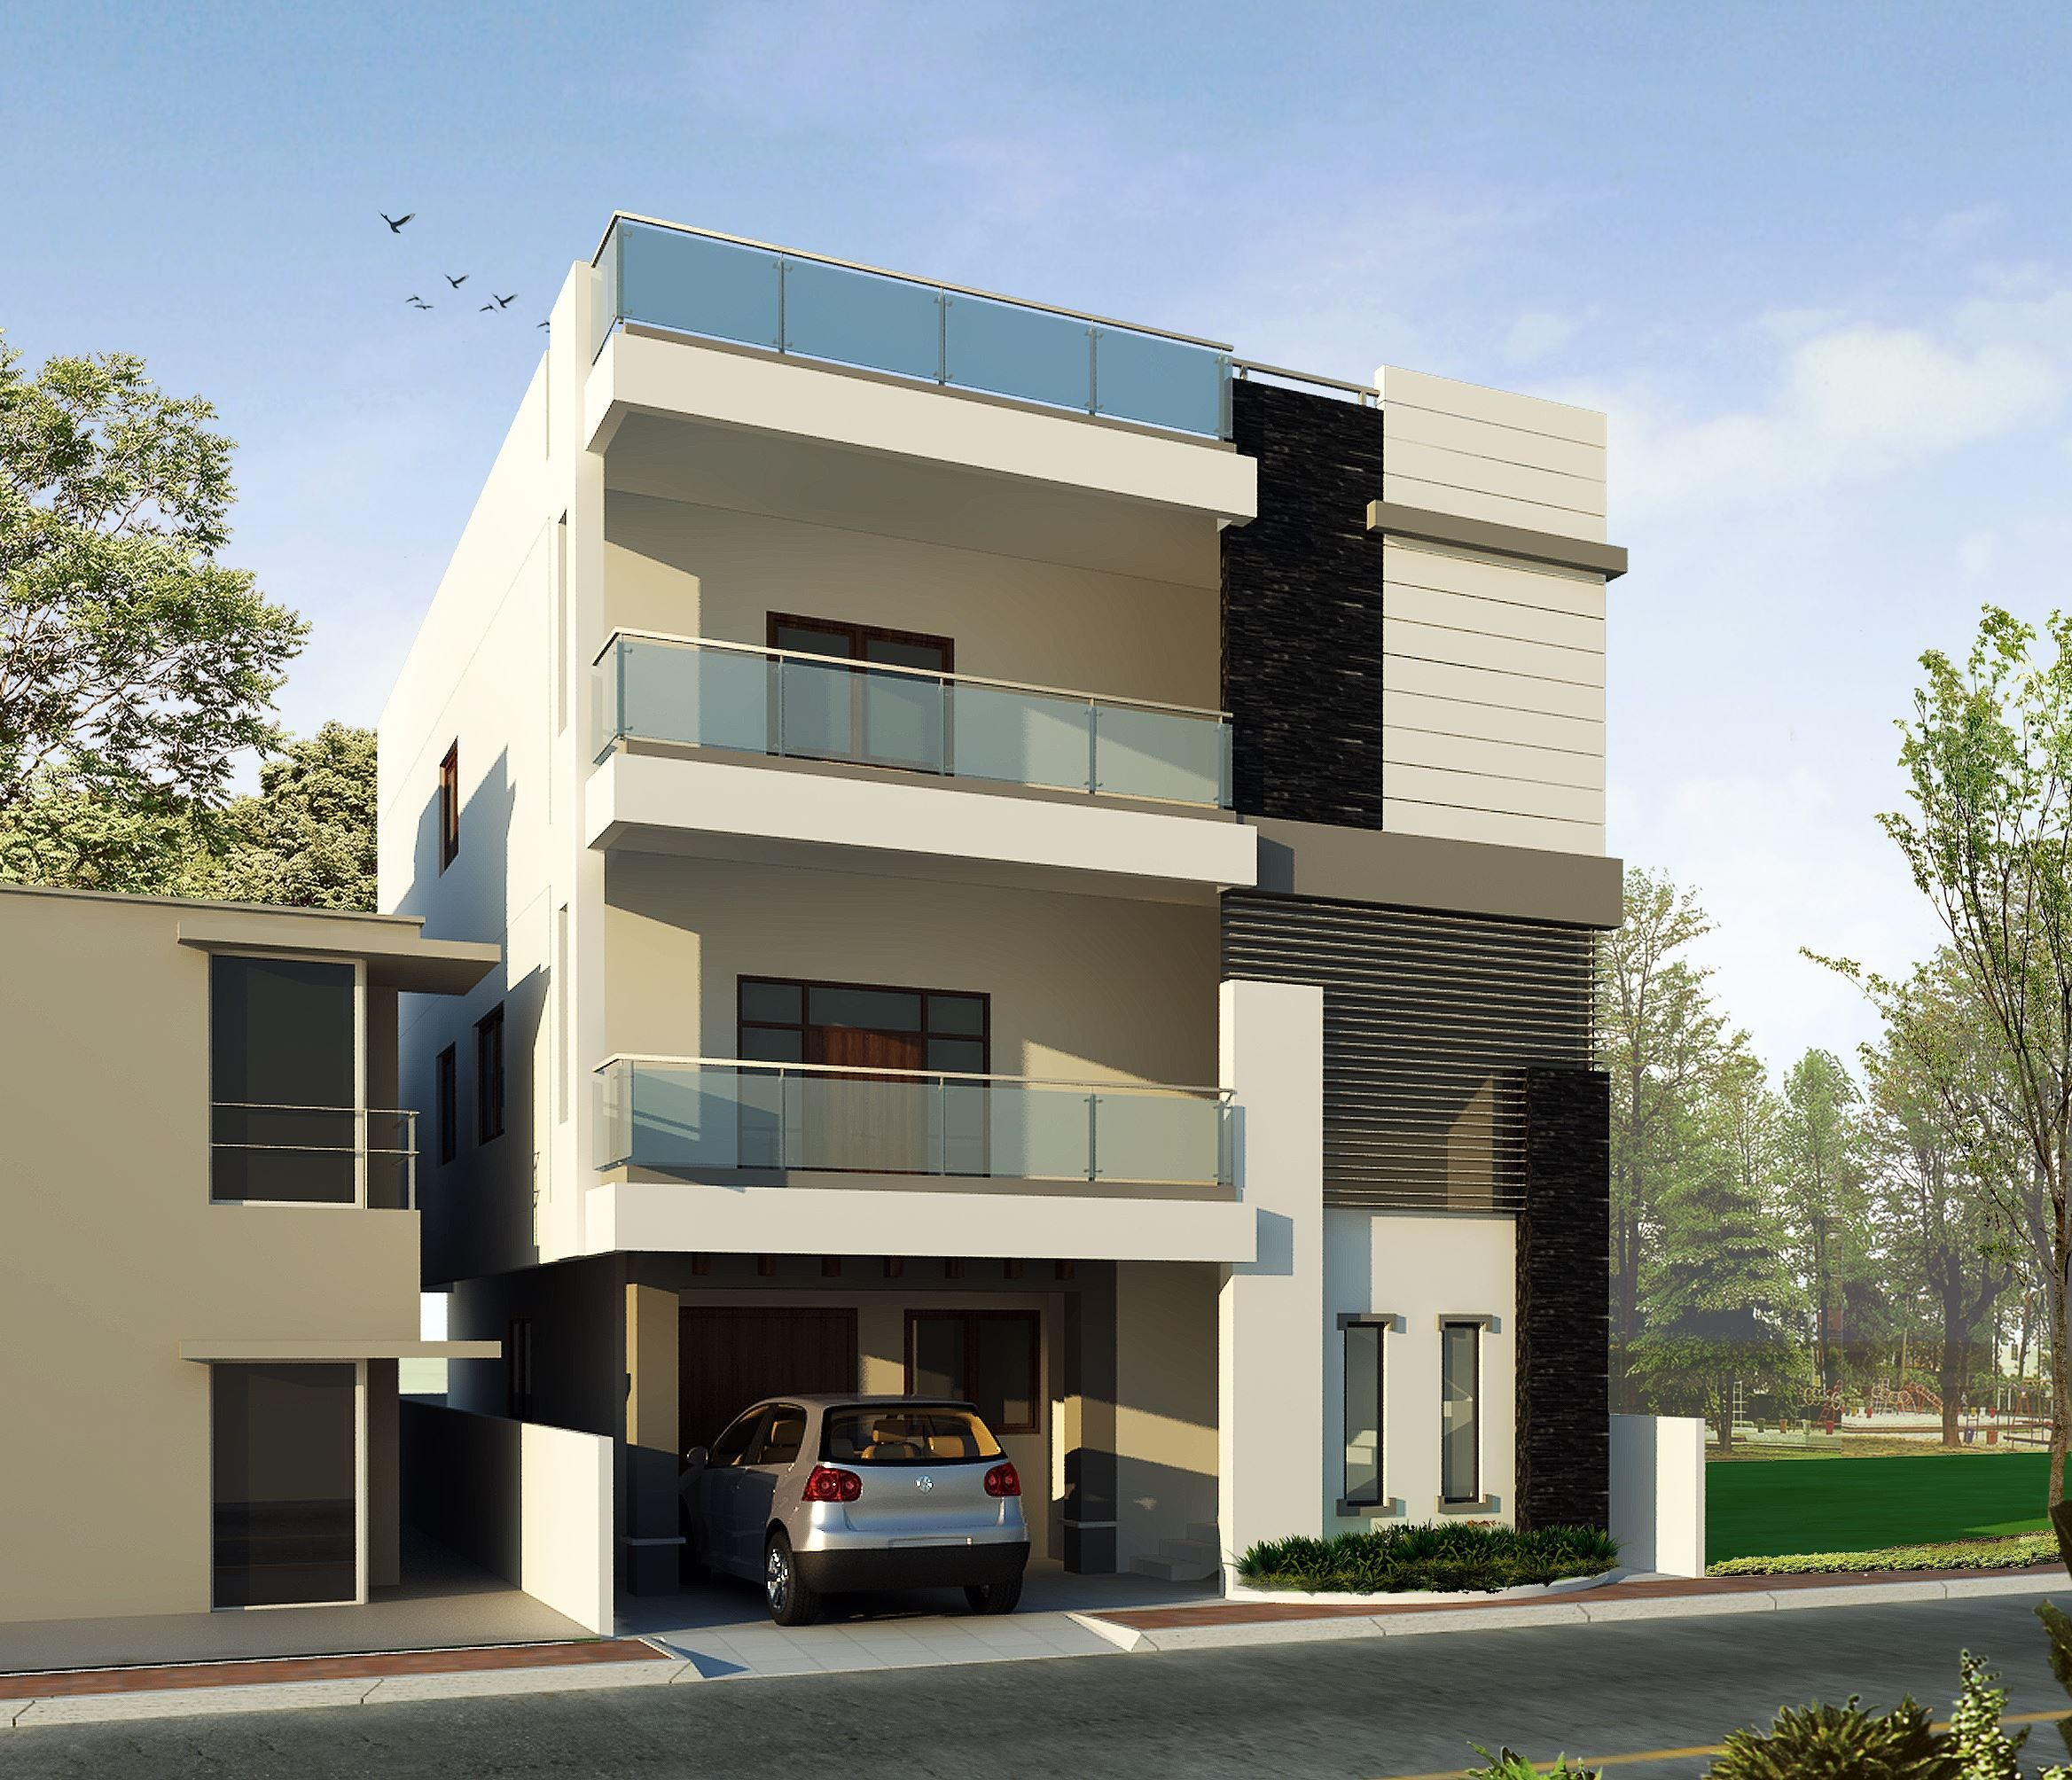 Hava a look at Mr.Vn Rao 's Home Elevation Let us know what you think about it in the comments below! If You Need Any Related Services  Please Contact : +91-040-64544555, +917995113333  Email: info@wallsasia.com www.wallsasia.com